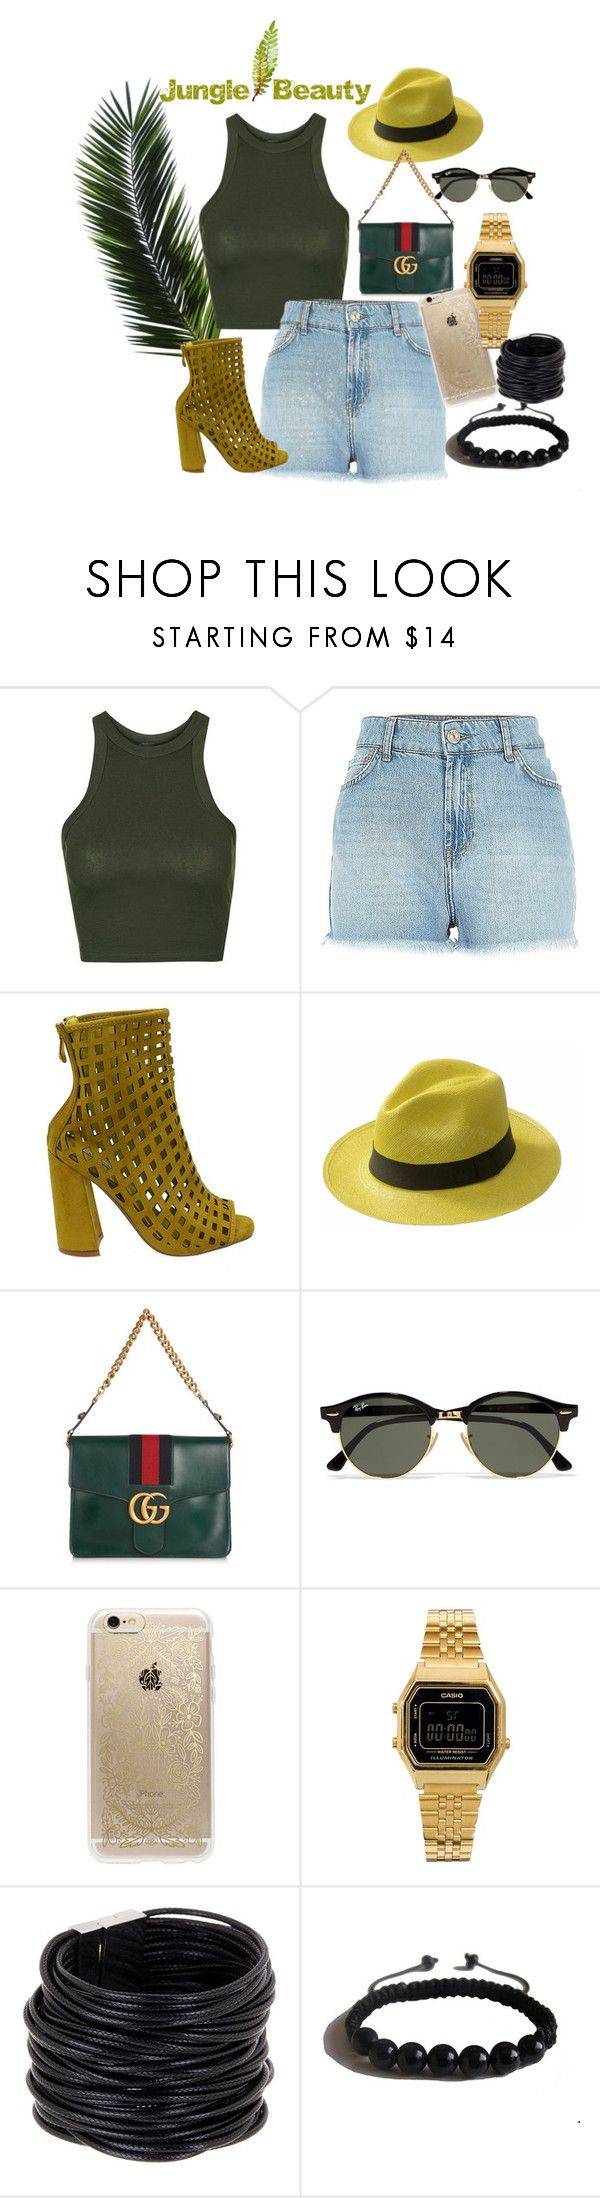 """""""Jungle Beauty"""" by slang-bait on Polyvore featuring Topshop, Ecua-Andino, Gucci, Ray-Ban, Rifle Paper Co, Casio, Saachi and Shamballa Jewels"""